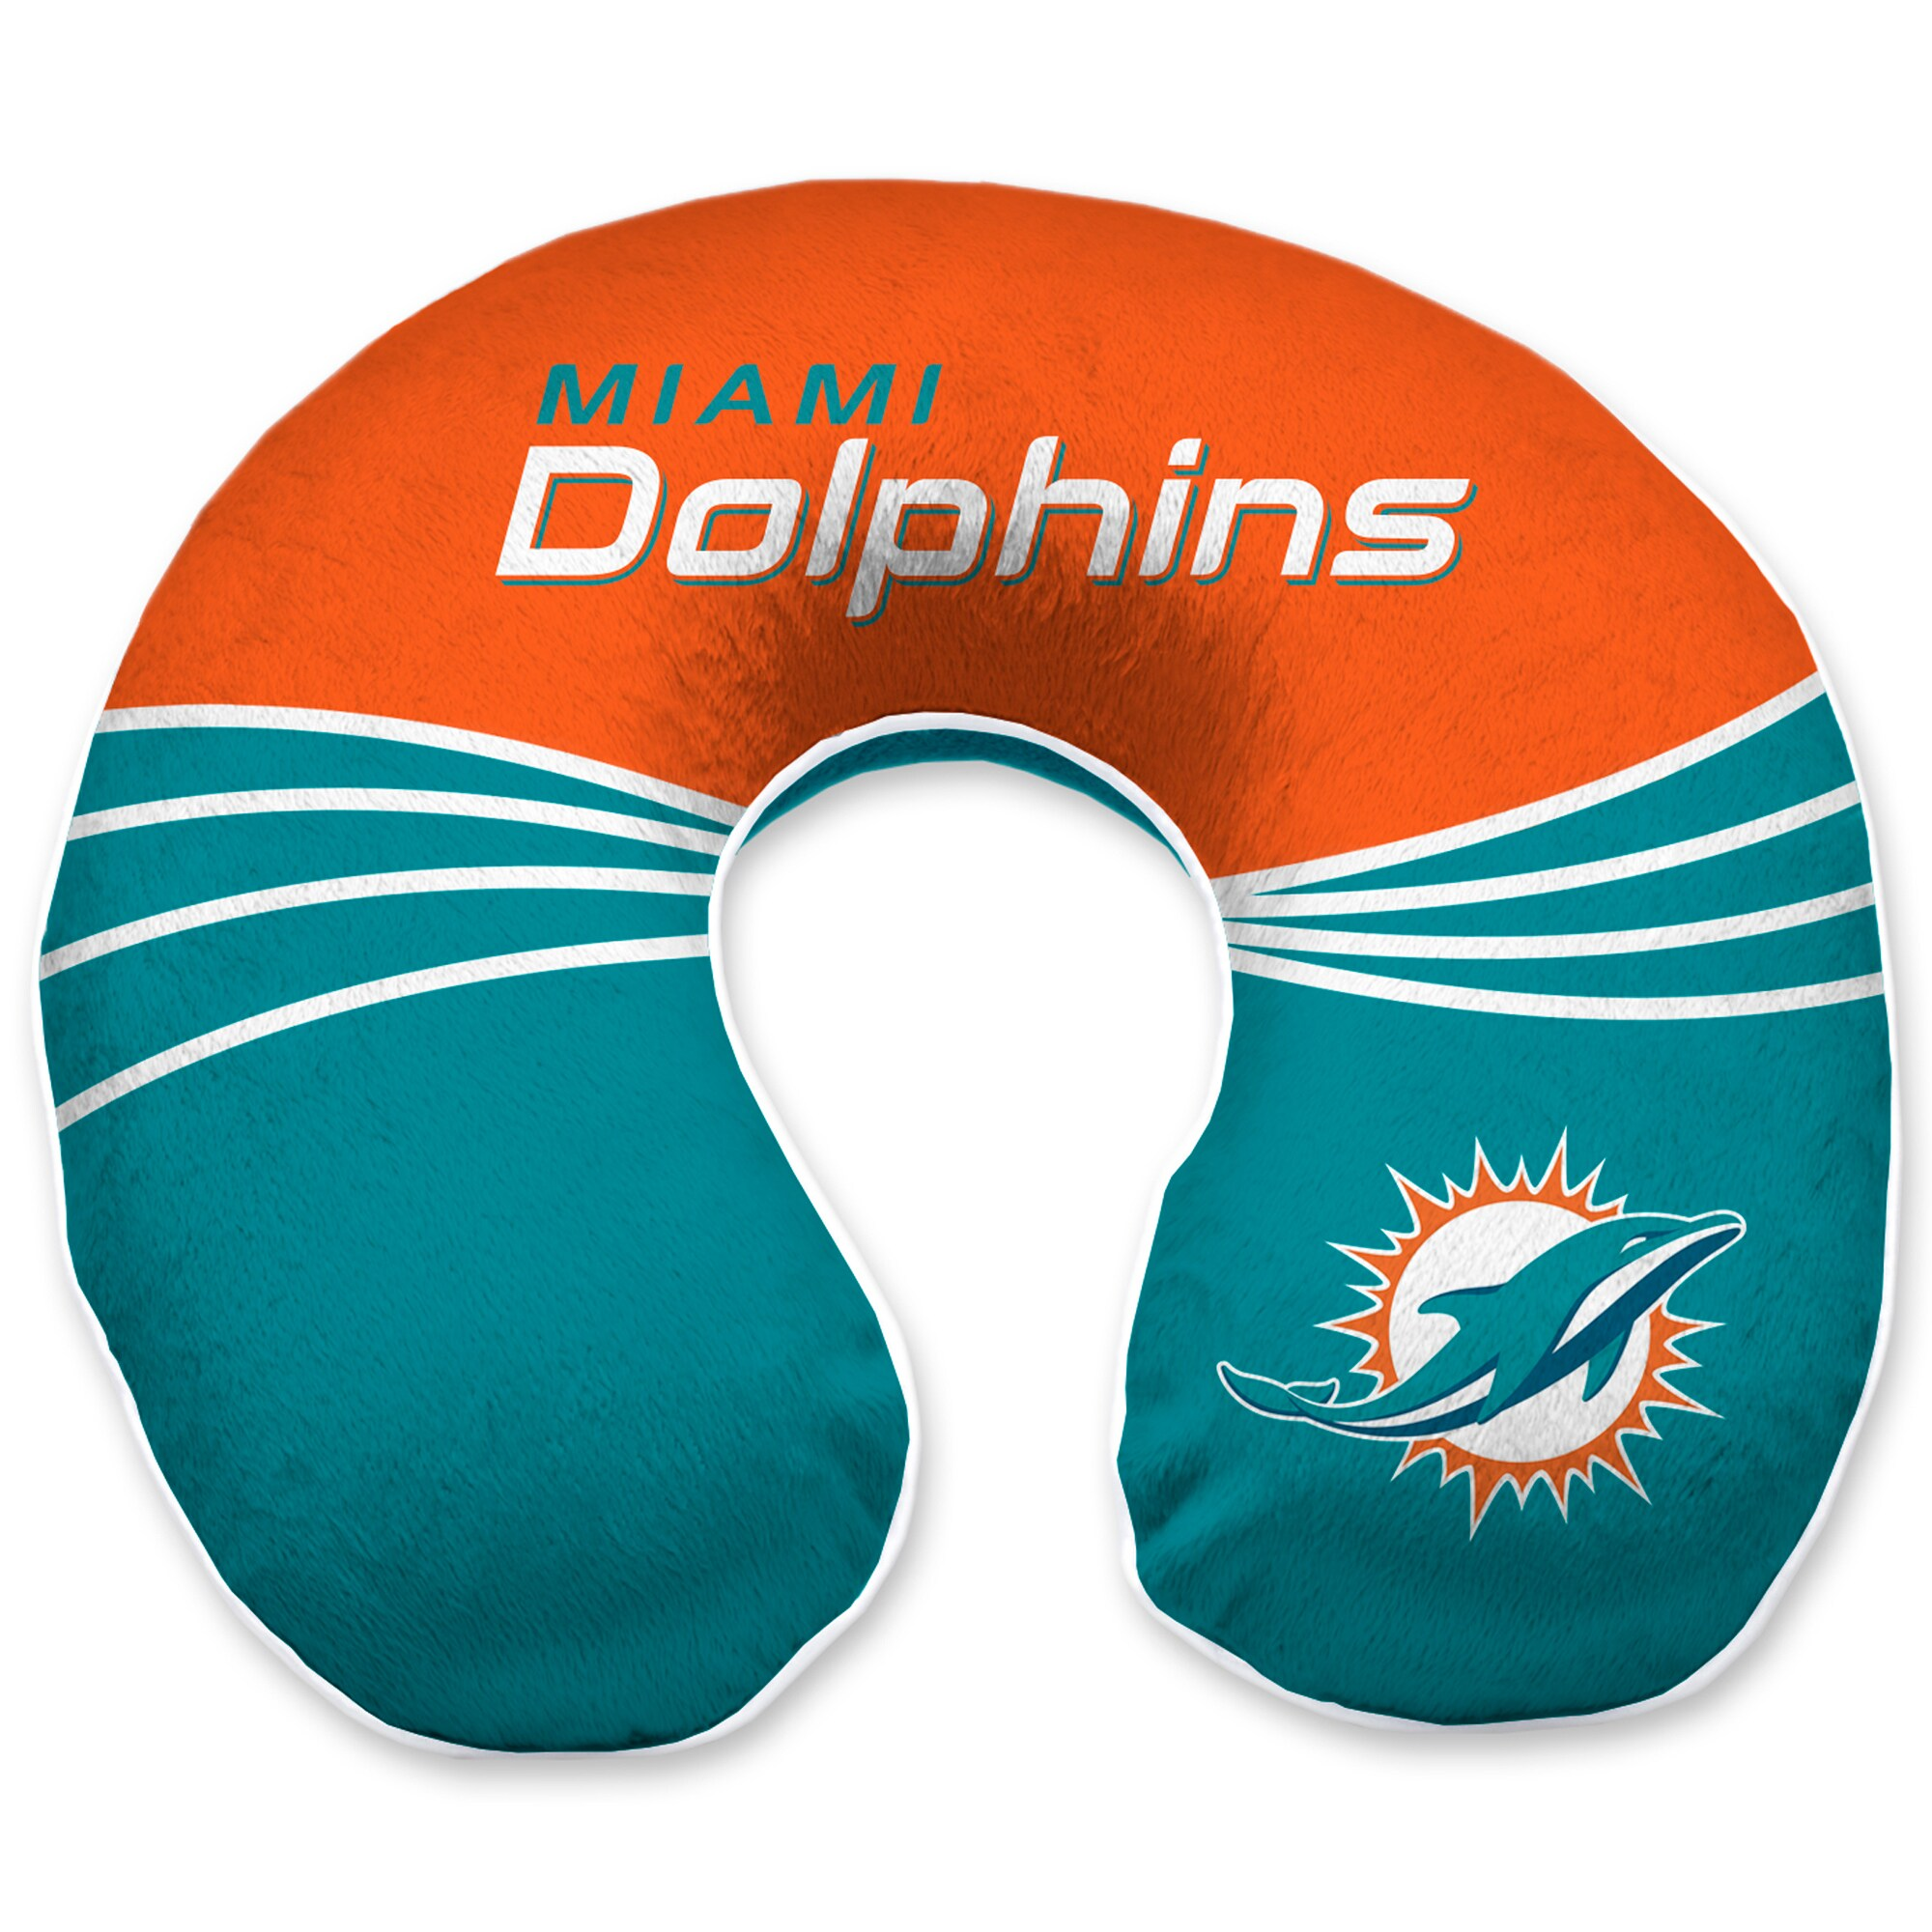 Miami Dolphins Wave Memory Foam U-Neck Travel Pillow - Teal